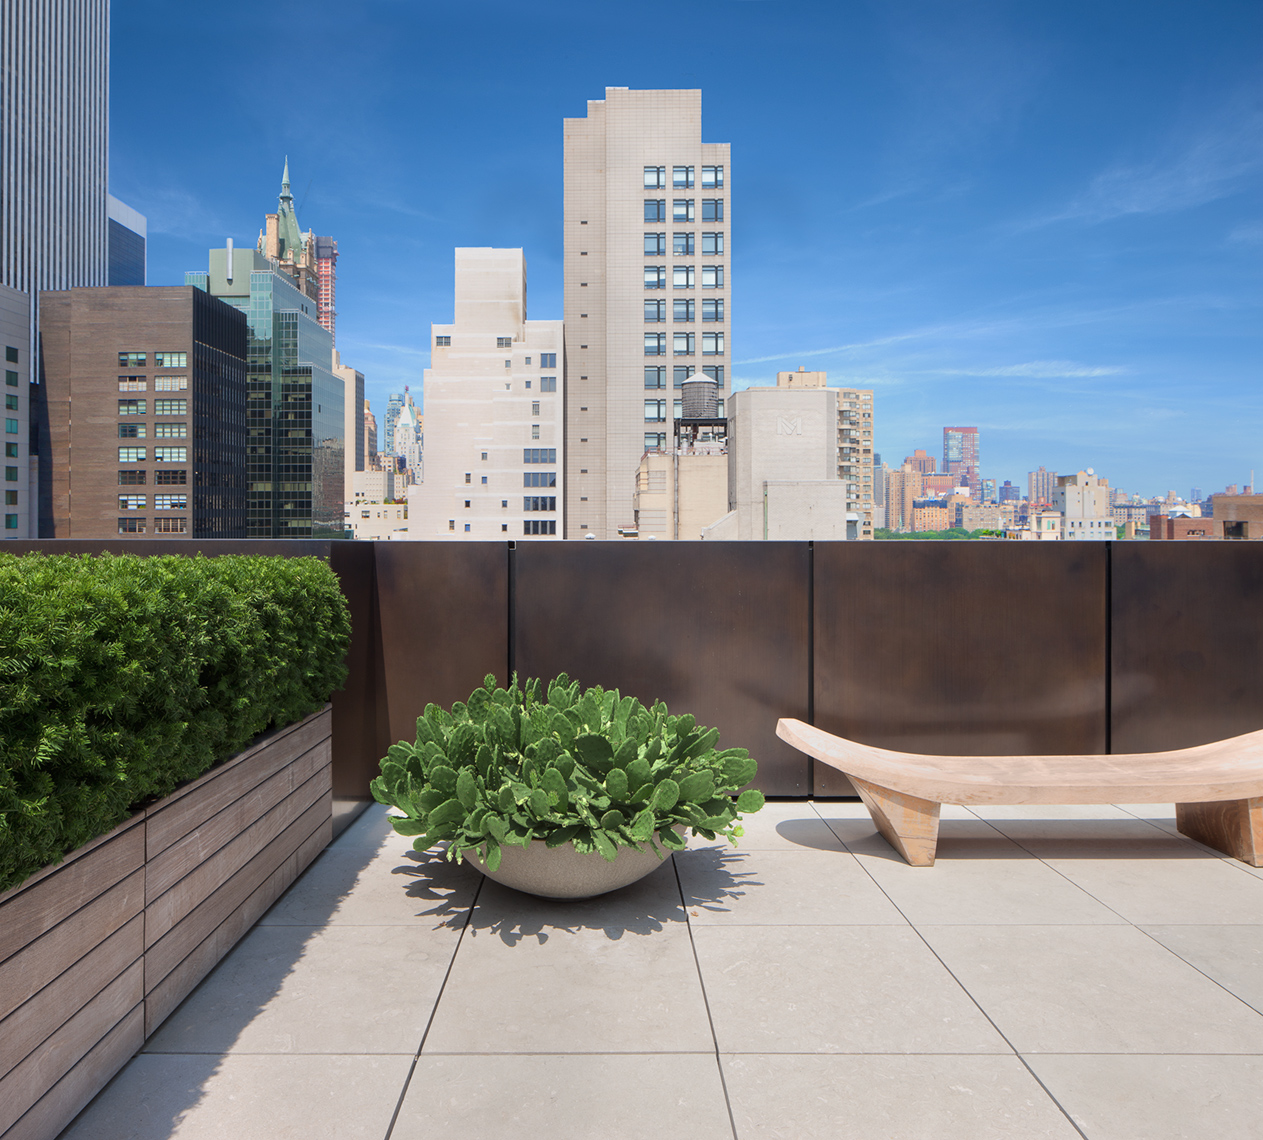 PARK AVENUE ROOFSCAPE